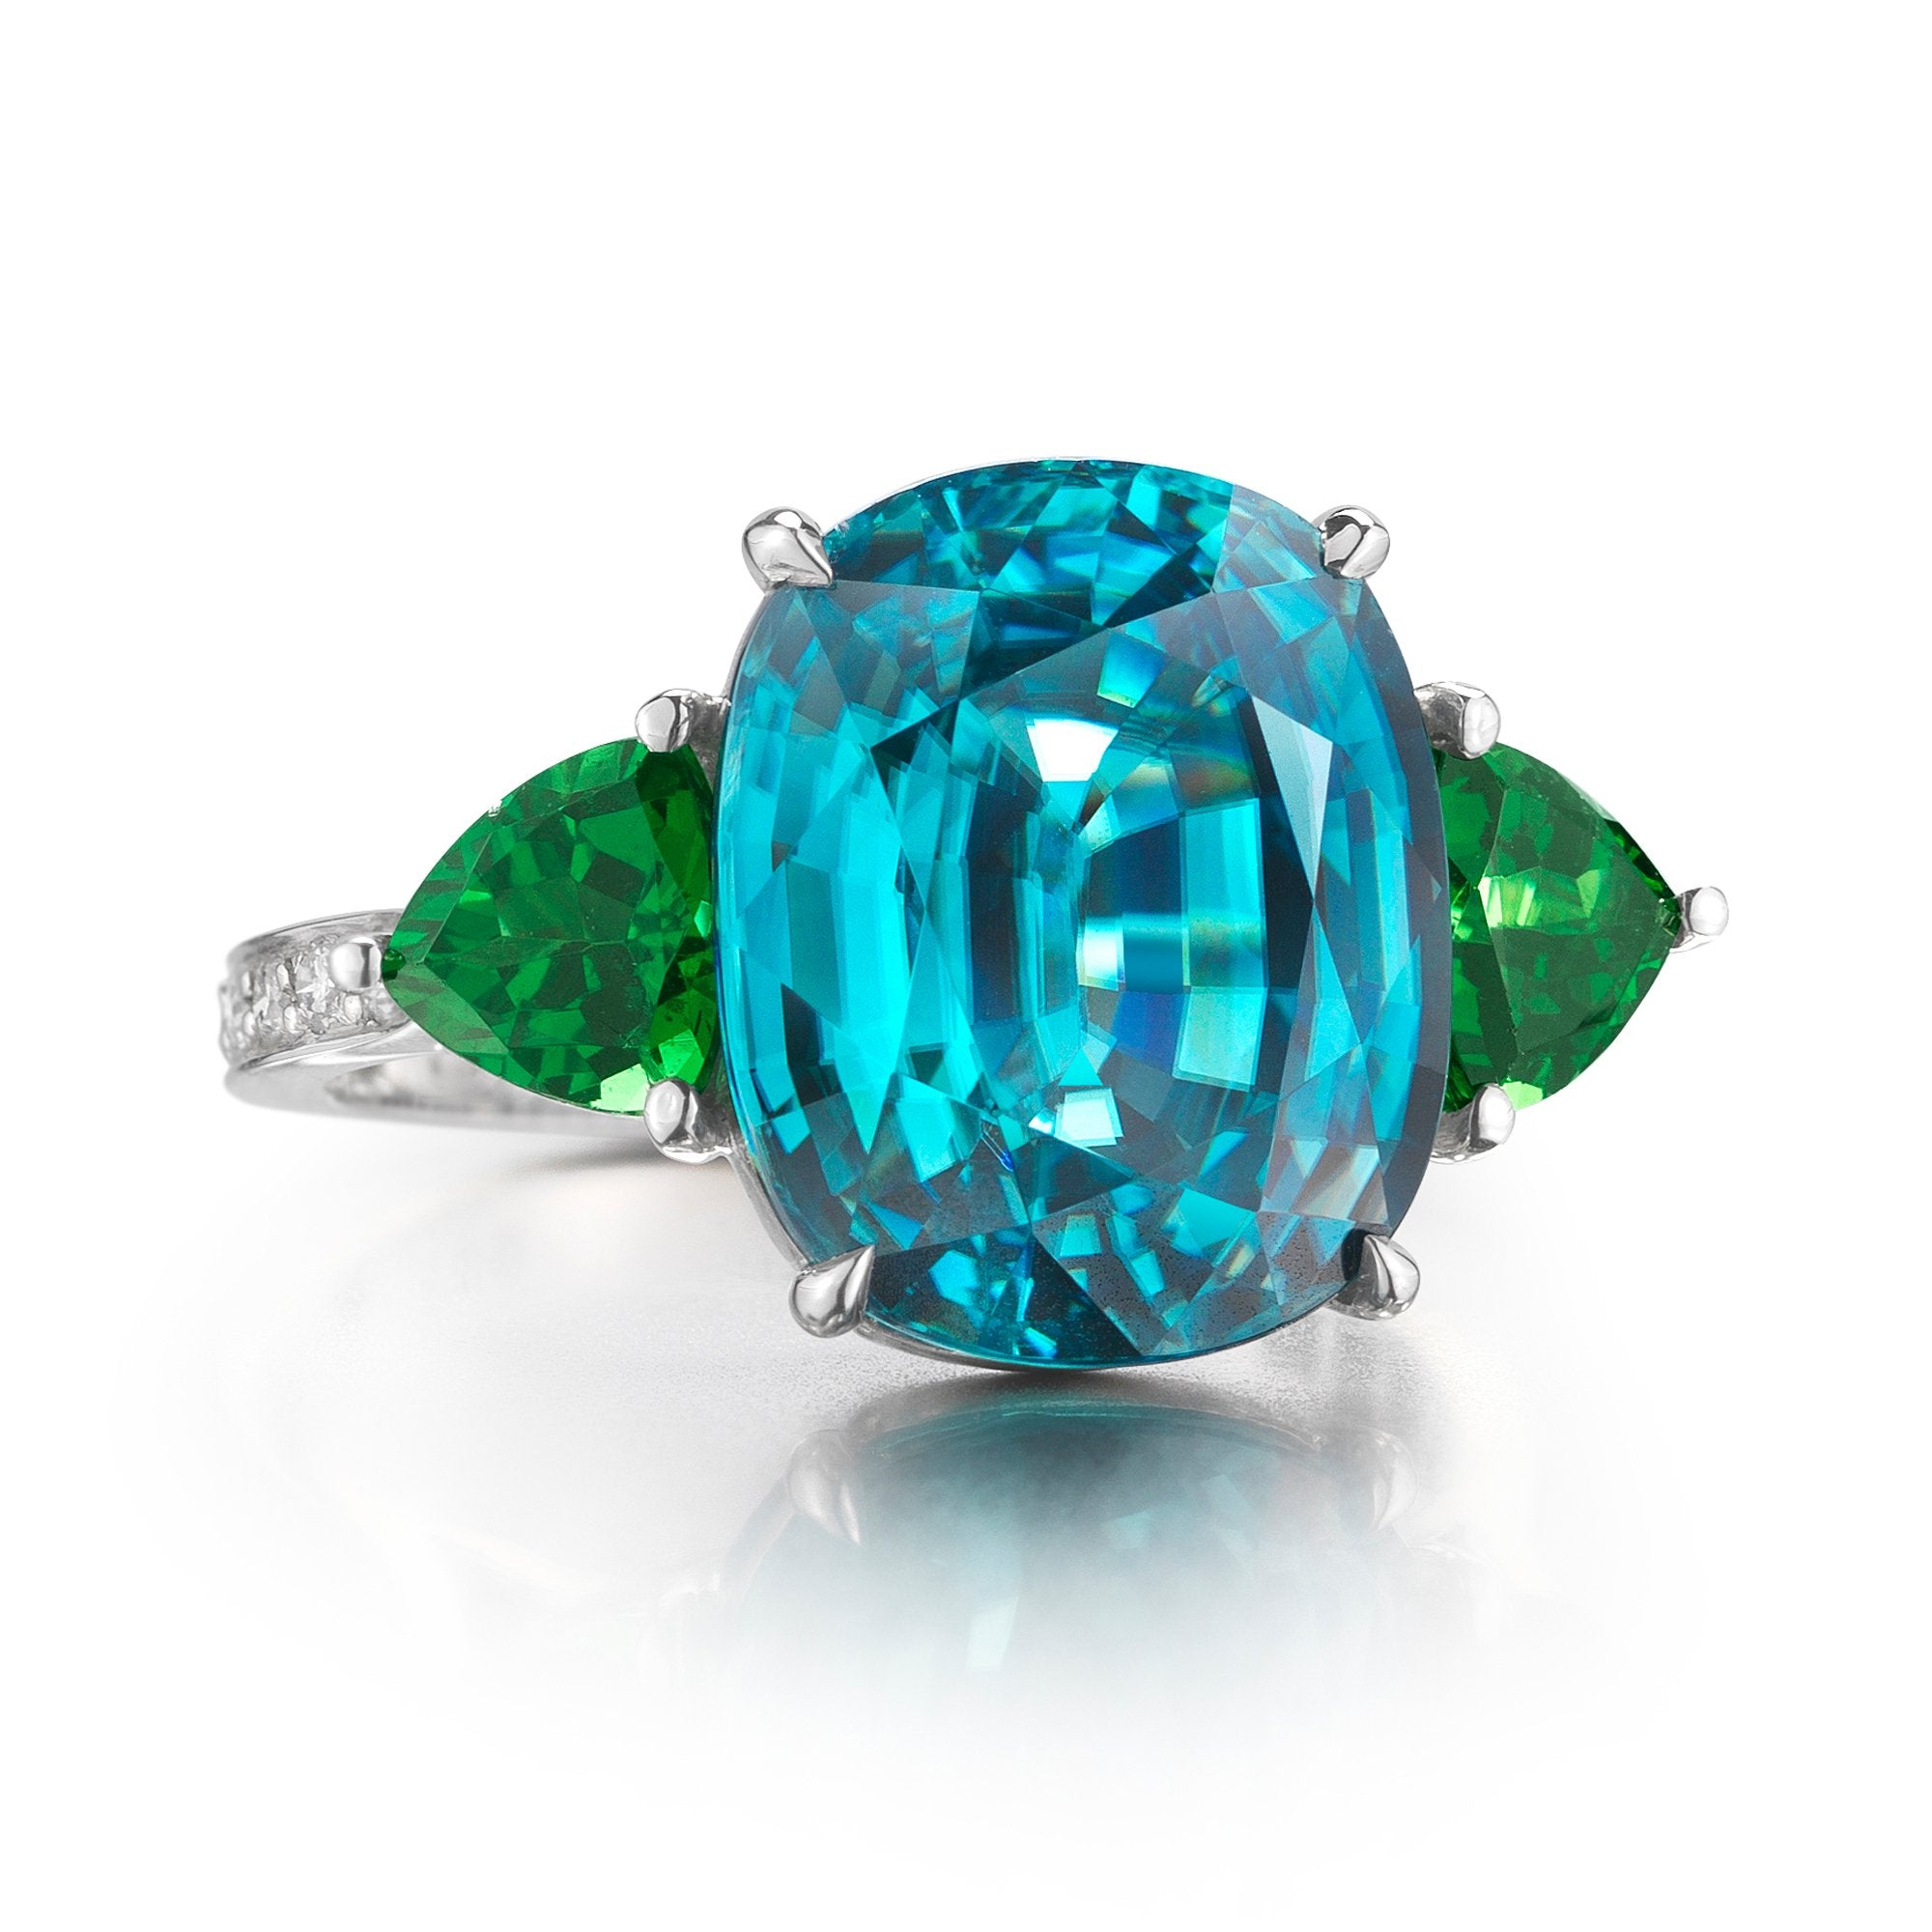 18kt White Gold Blue Zircon and Green Tourmaline Ring - Paolo Costagli